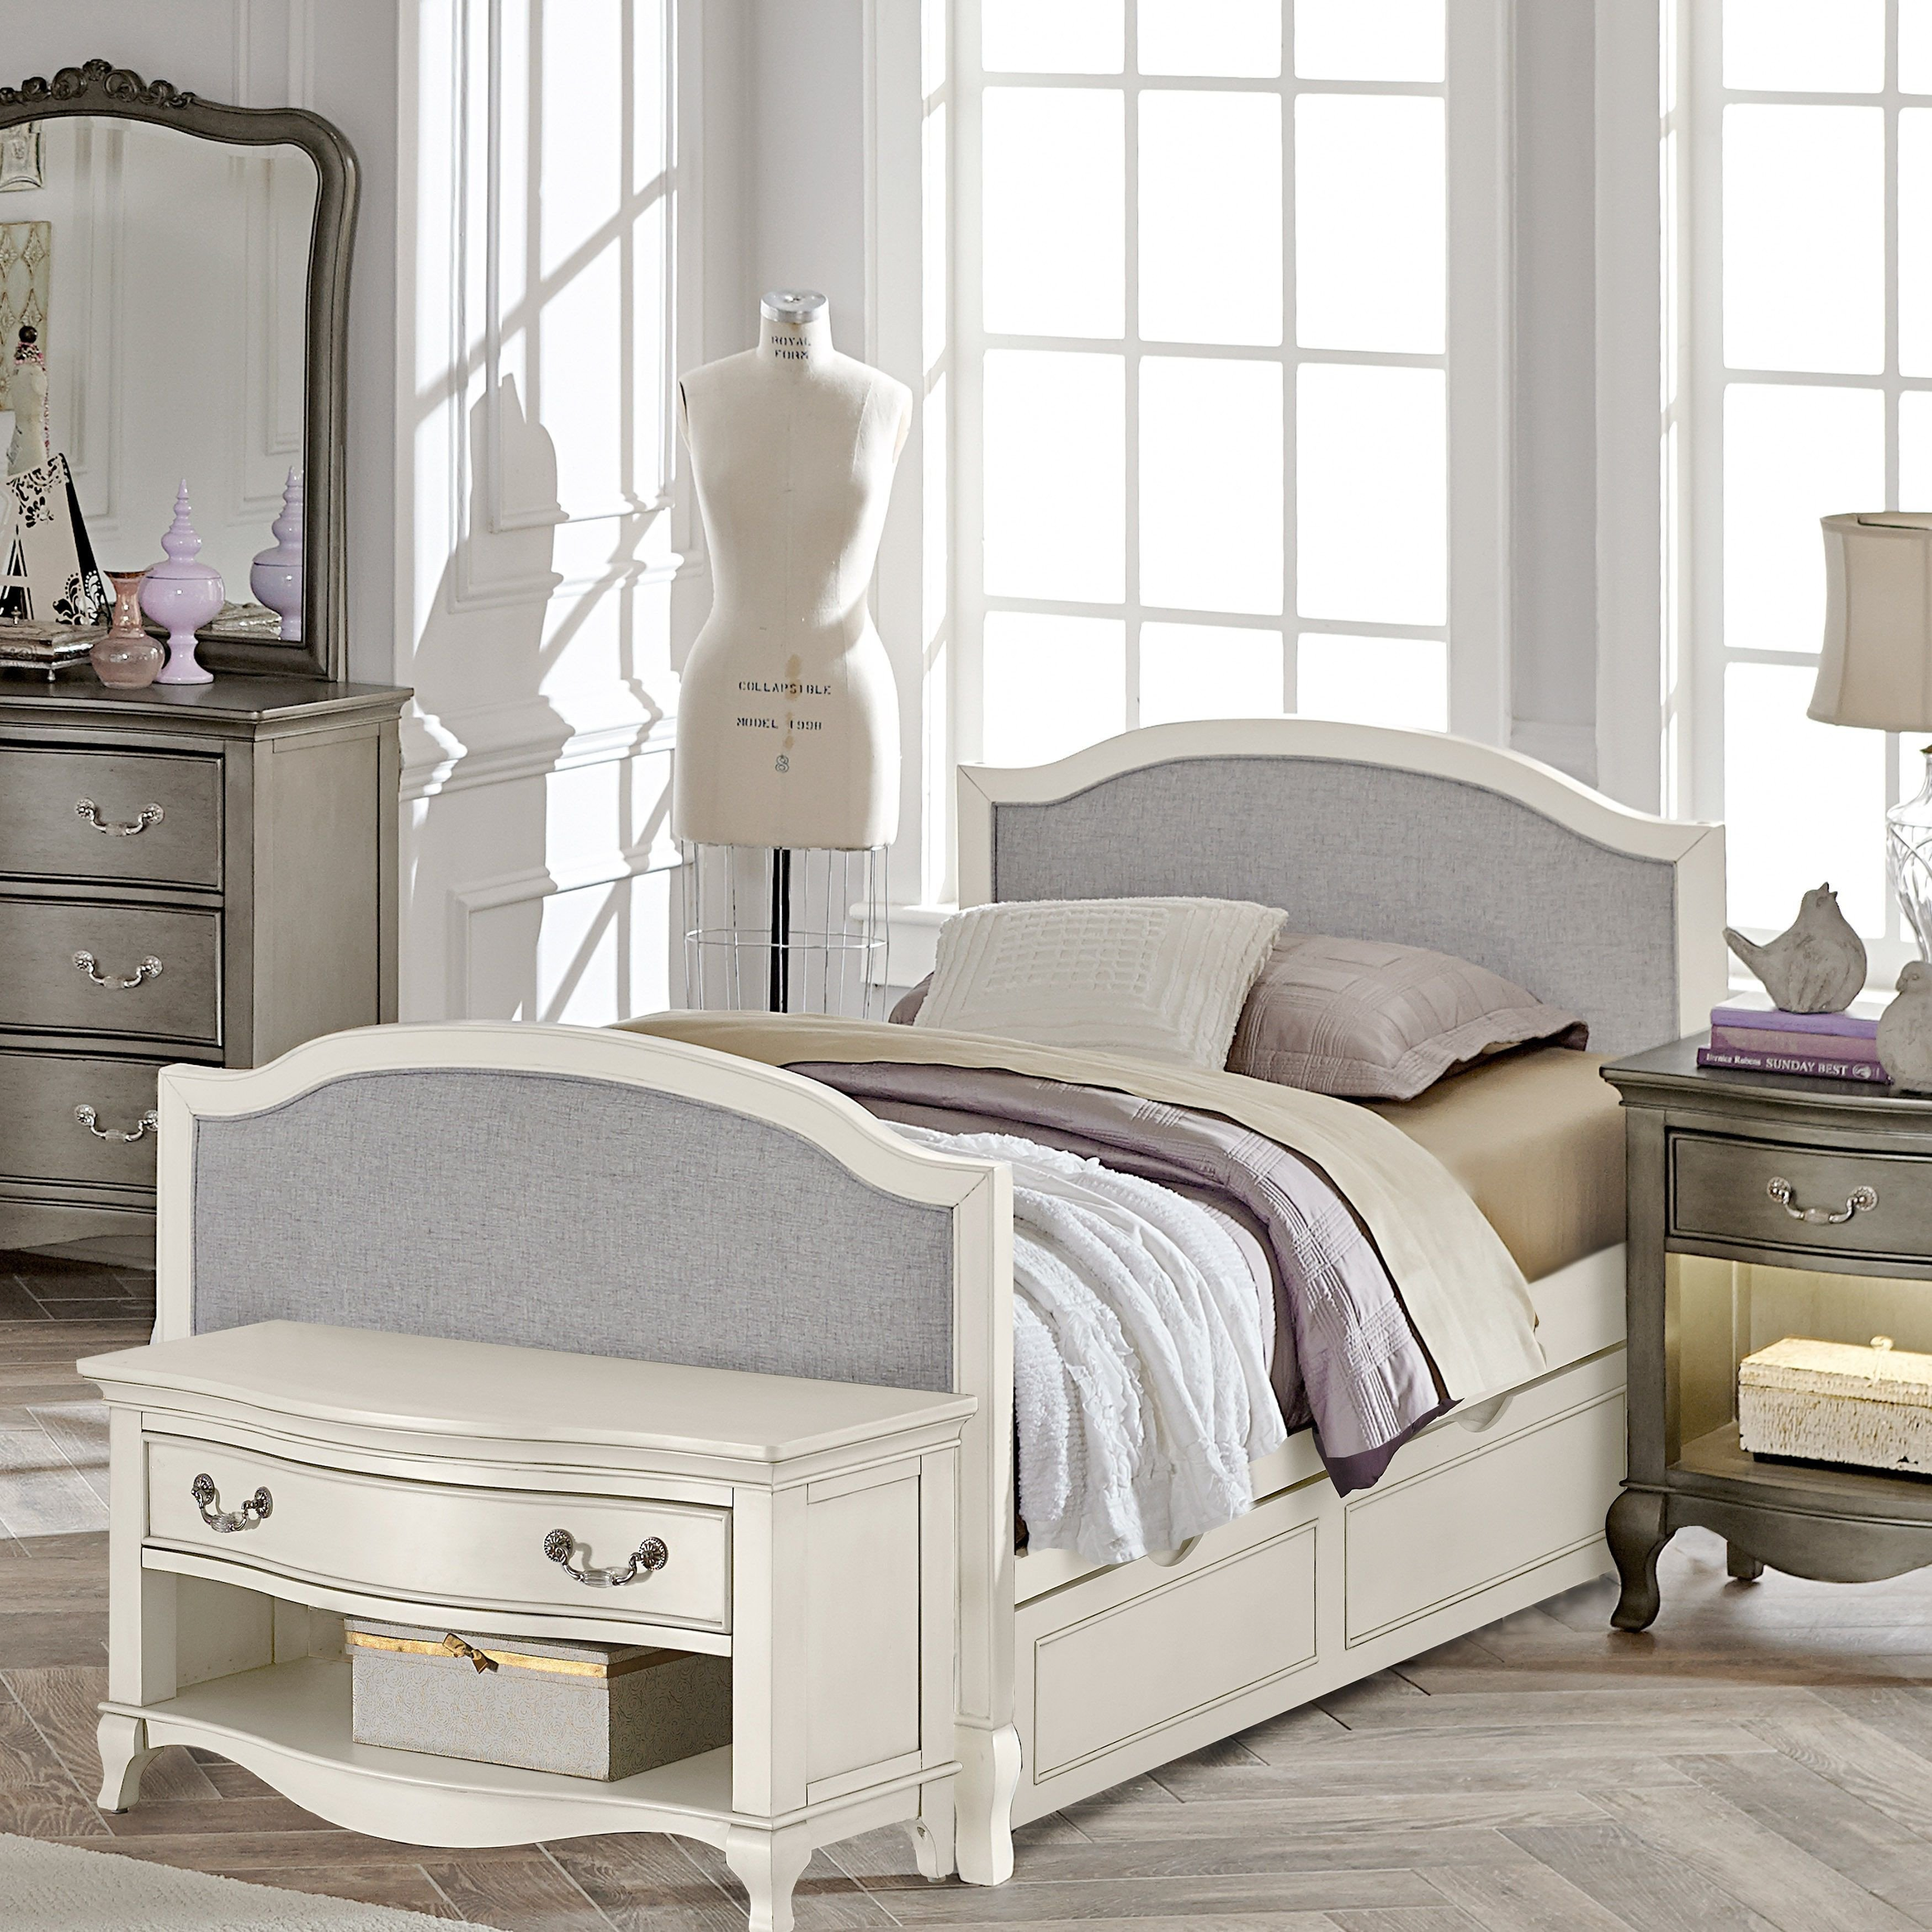 Black Twin Bedroom Set Beautiful Kensington Victoria Antique White Twin Size Upholstered